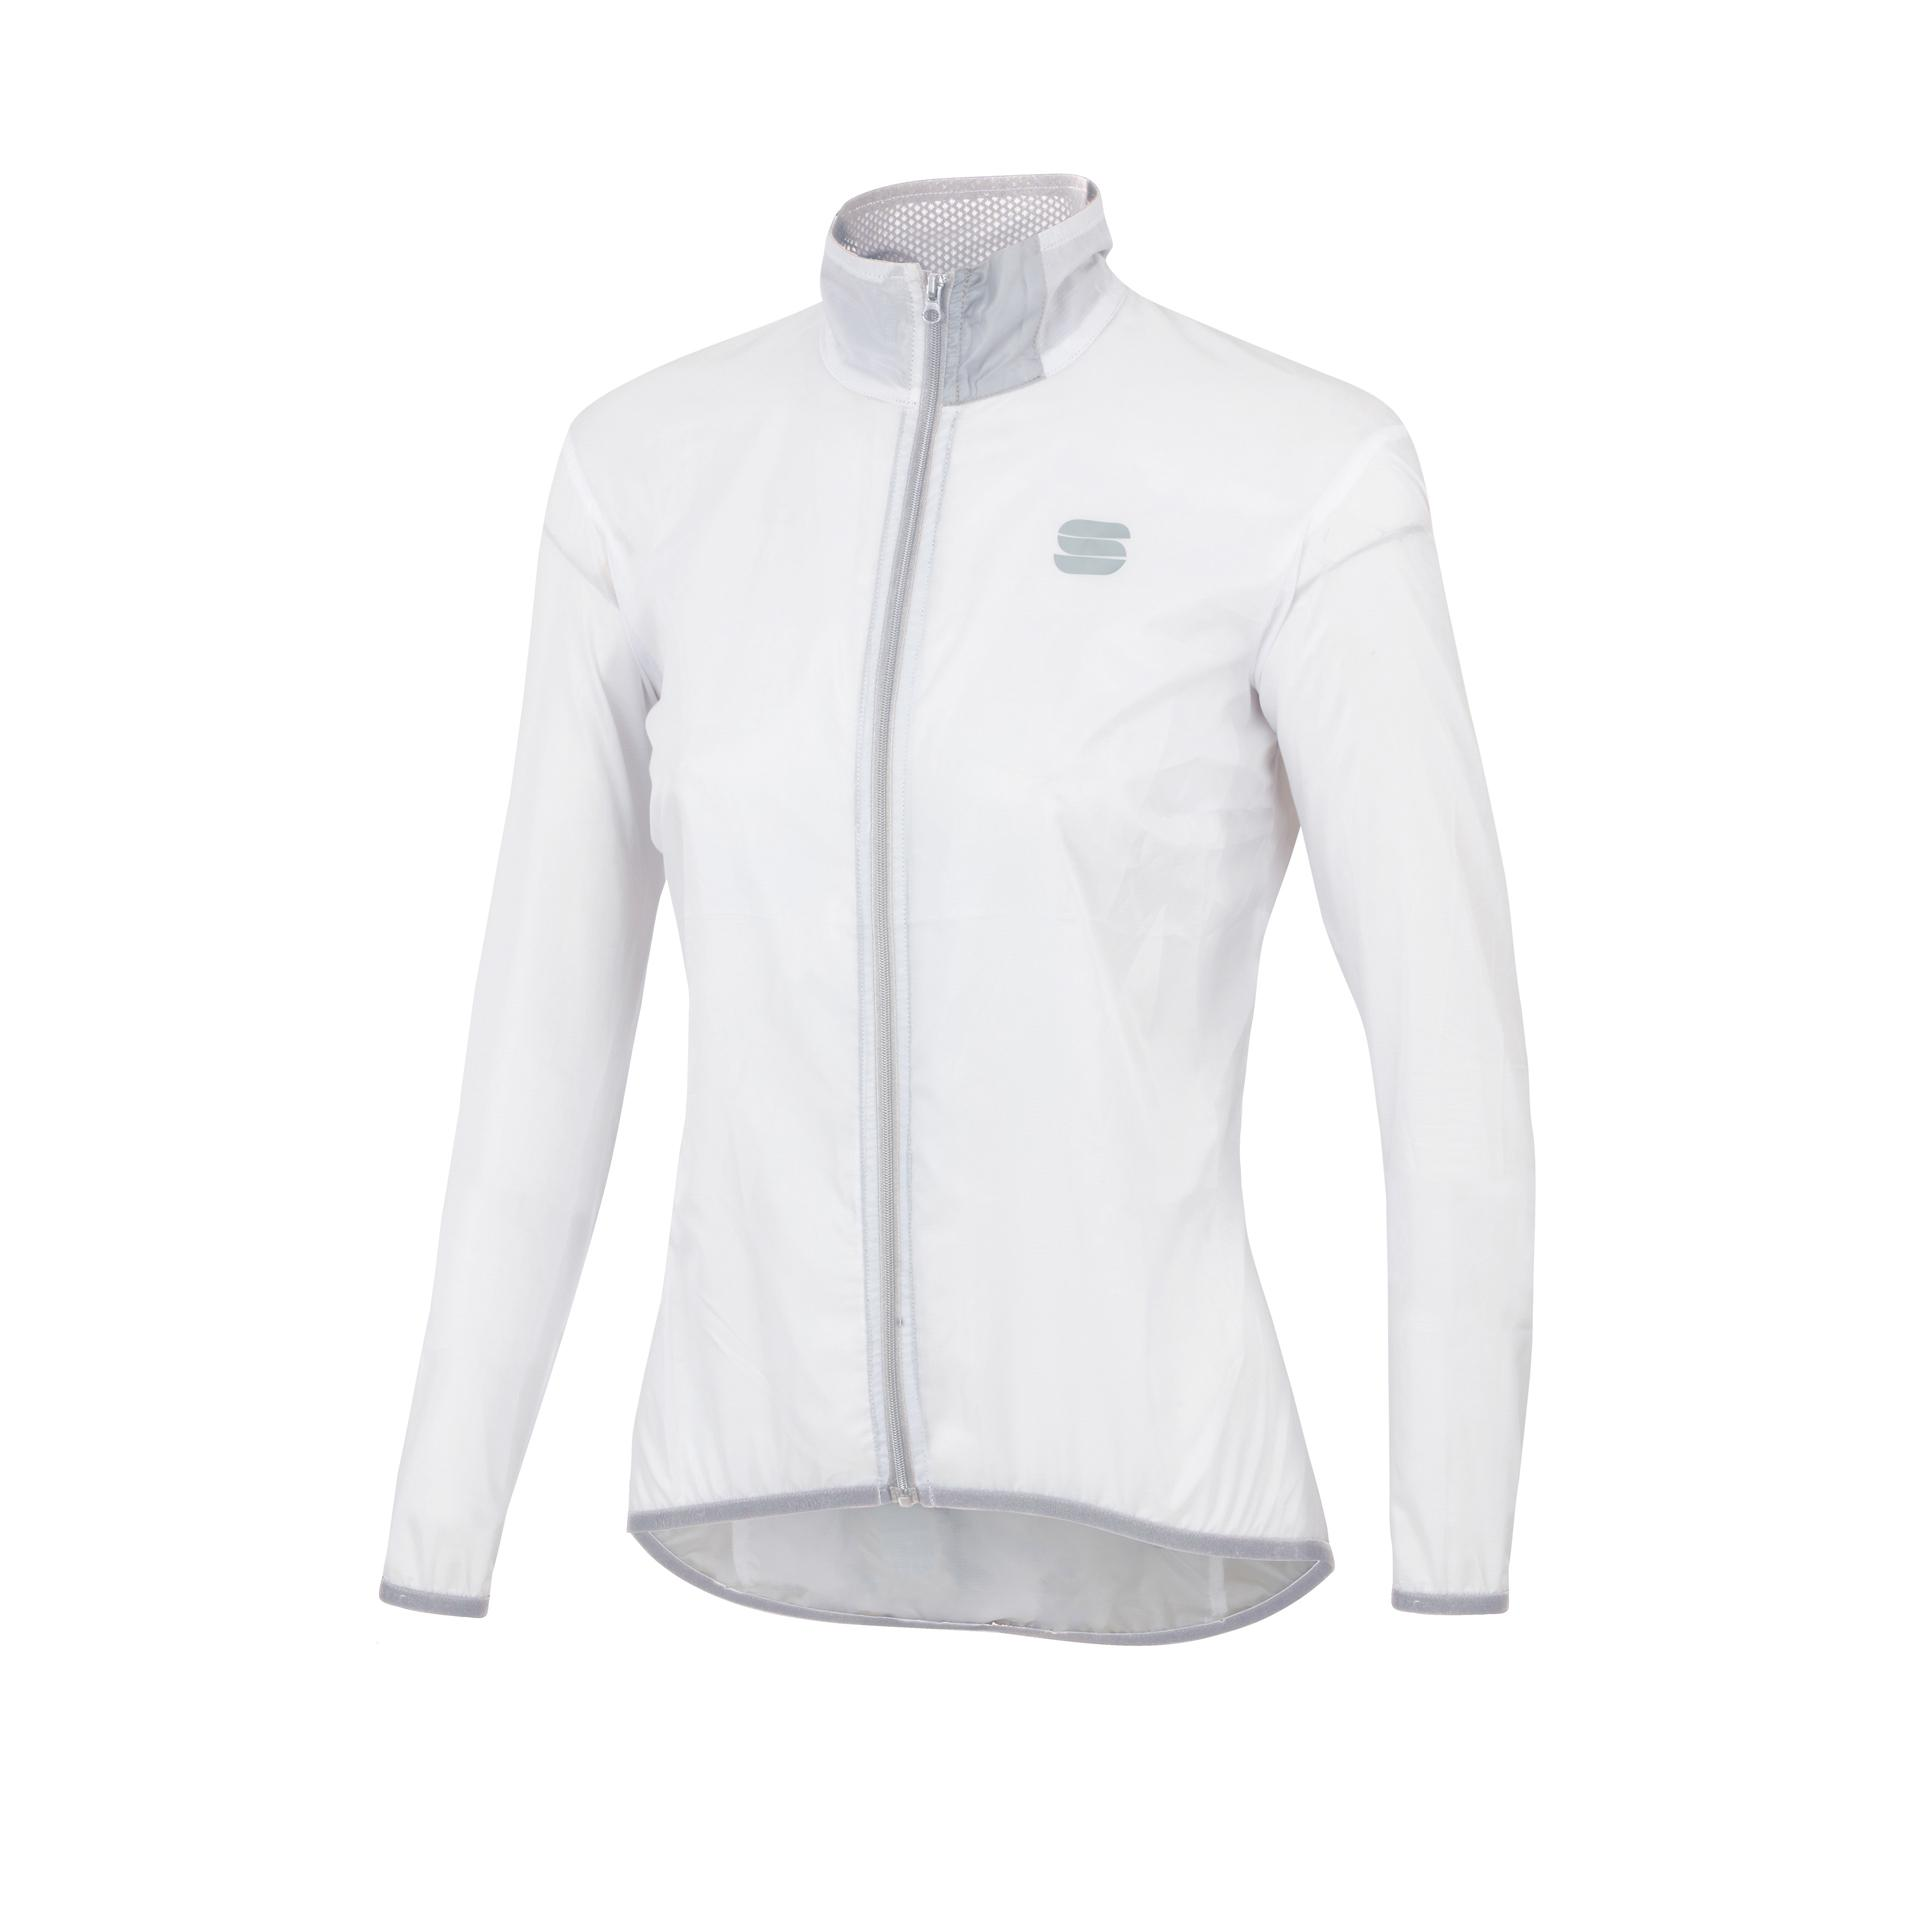 Sportful Fietsjack Dames Wit  / SF Hot Pack Easylight W Jacket-White